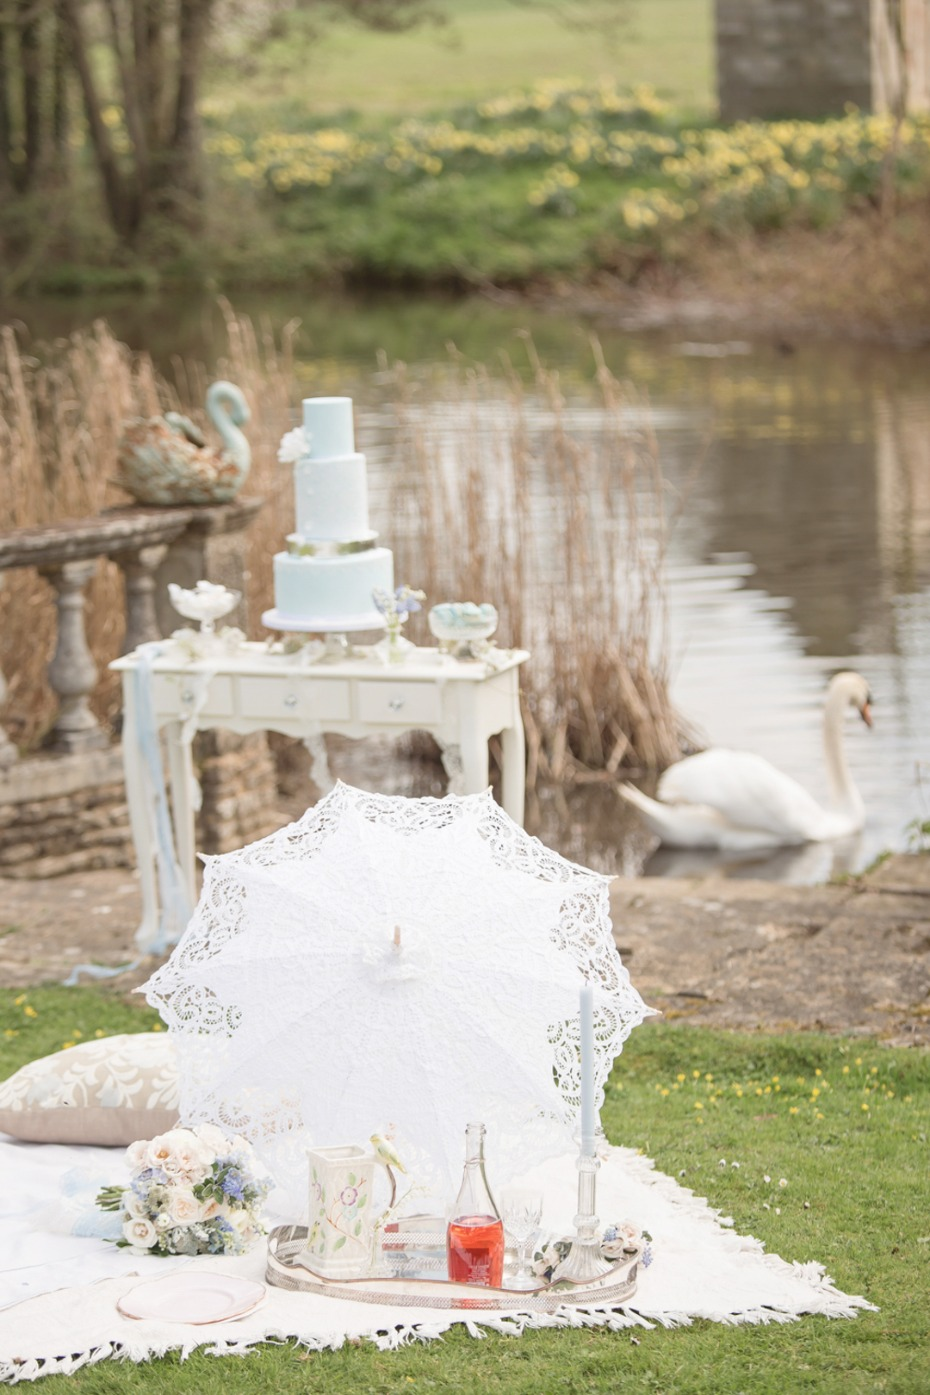 Sense and Sensibility inspired wedding decor